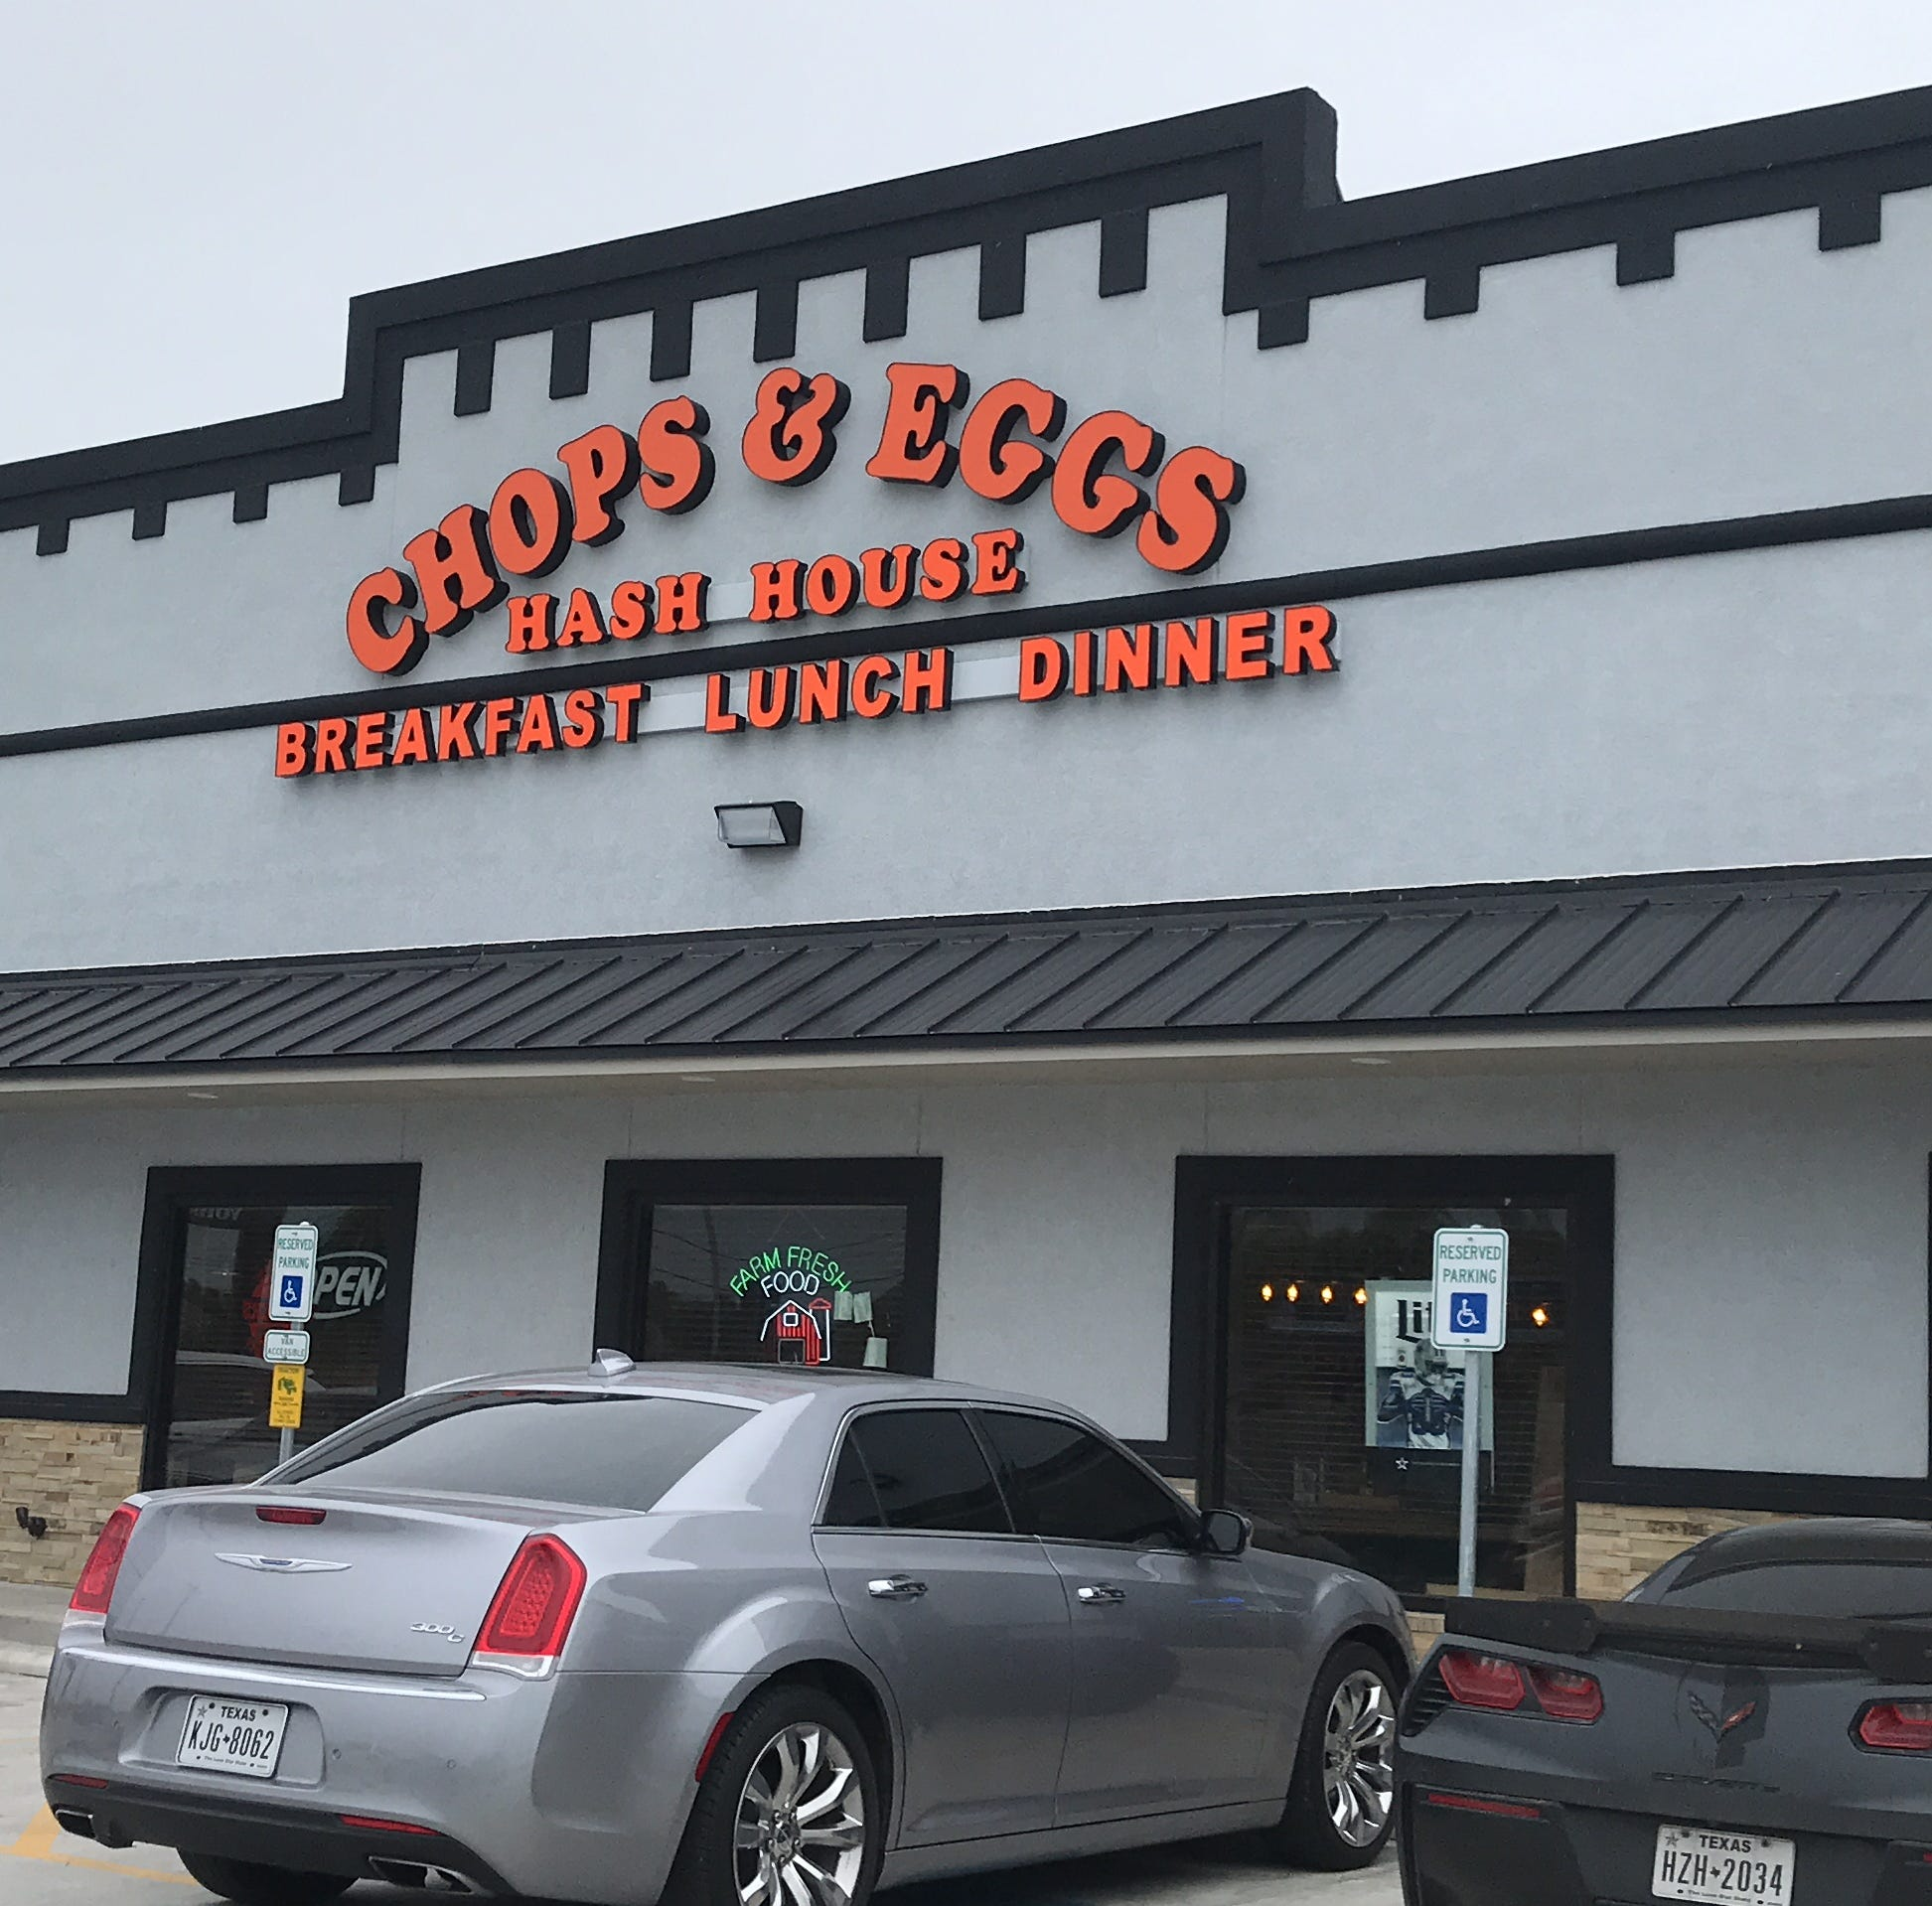 Chops and Eggs: This popular Corpus Christi breakfast eatery is opening in Portland